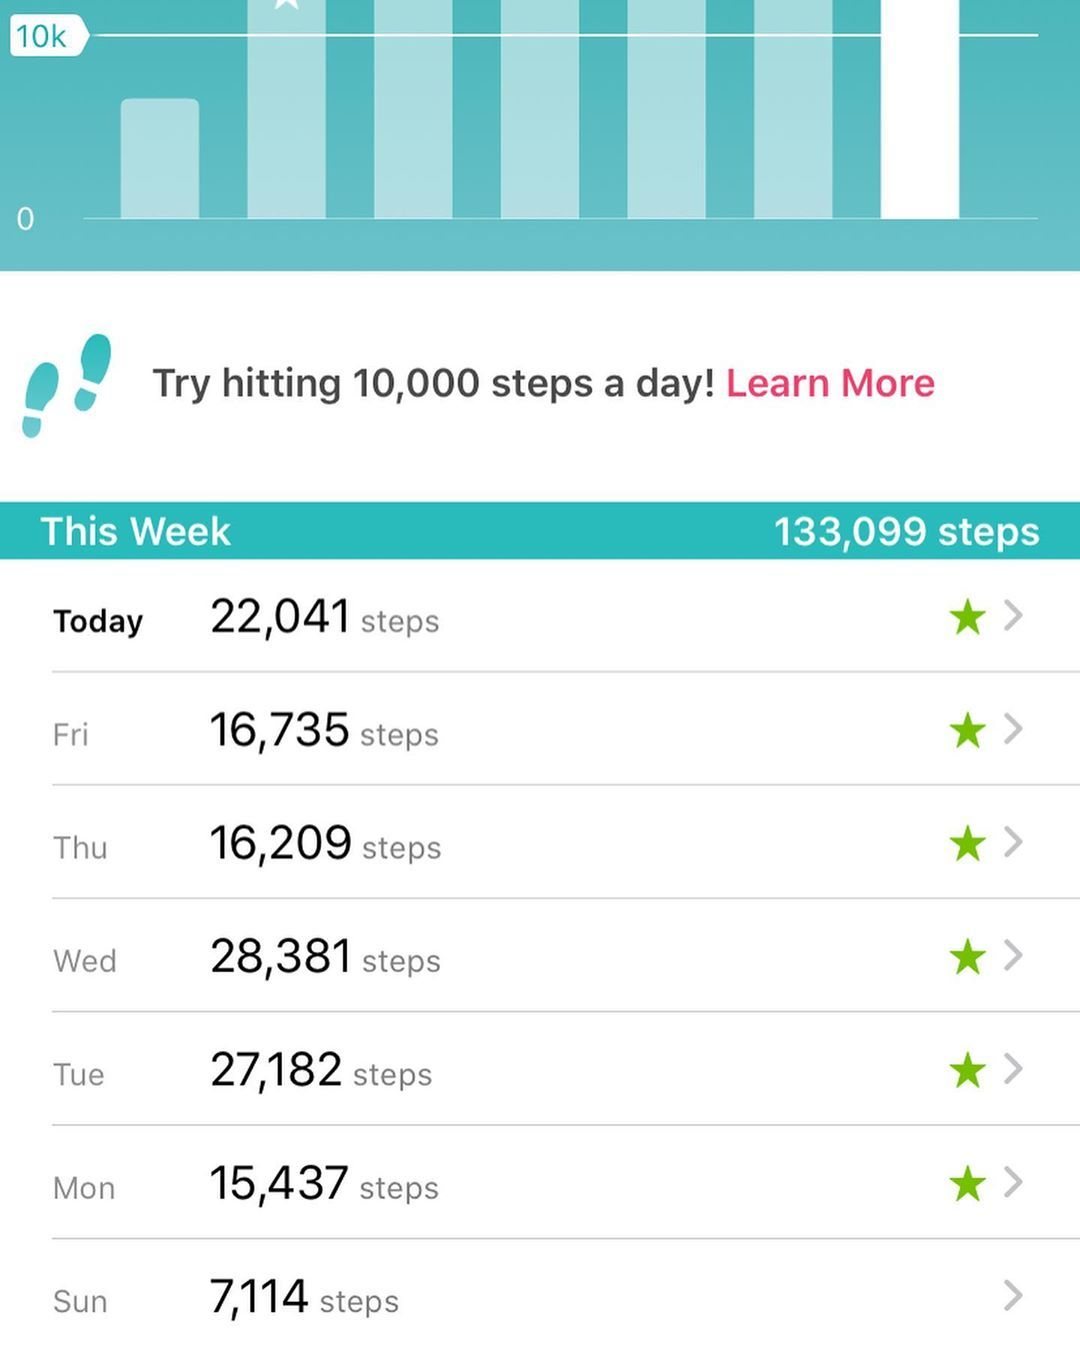 Other then last Sunday, which was day one of night shifts mode... I think I did pretty good this week (87.9km)🙌🙌 Now to let the motivation continue!! #steps #walking #walkingaround #moving #keepgoing #keepmoving #stayingactive #active #weightlossjourney #weightloss #fitnessmotivation #fitnessjourney #fitness #fitfam #fitchick #motivation #onedayatatime #progressnotperfection #workingonmyself #workingonmyfitness #workingonme #igotthis💪 #nostopping #keeplookingforward #dontlookback #enjoythejou